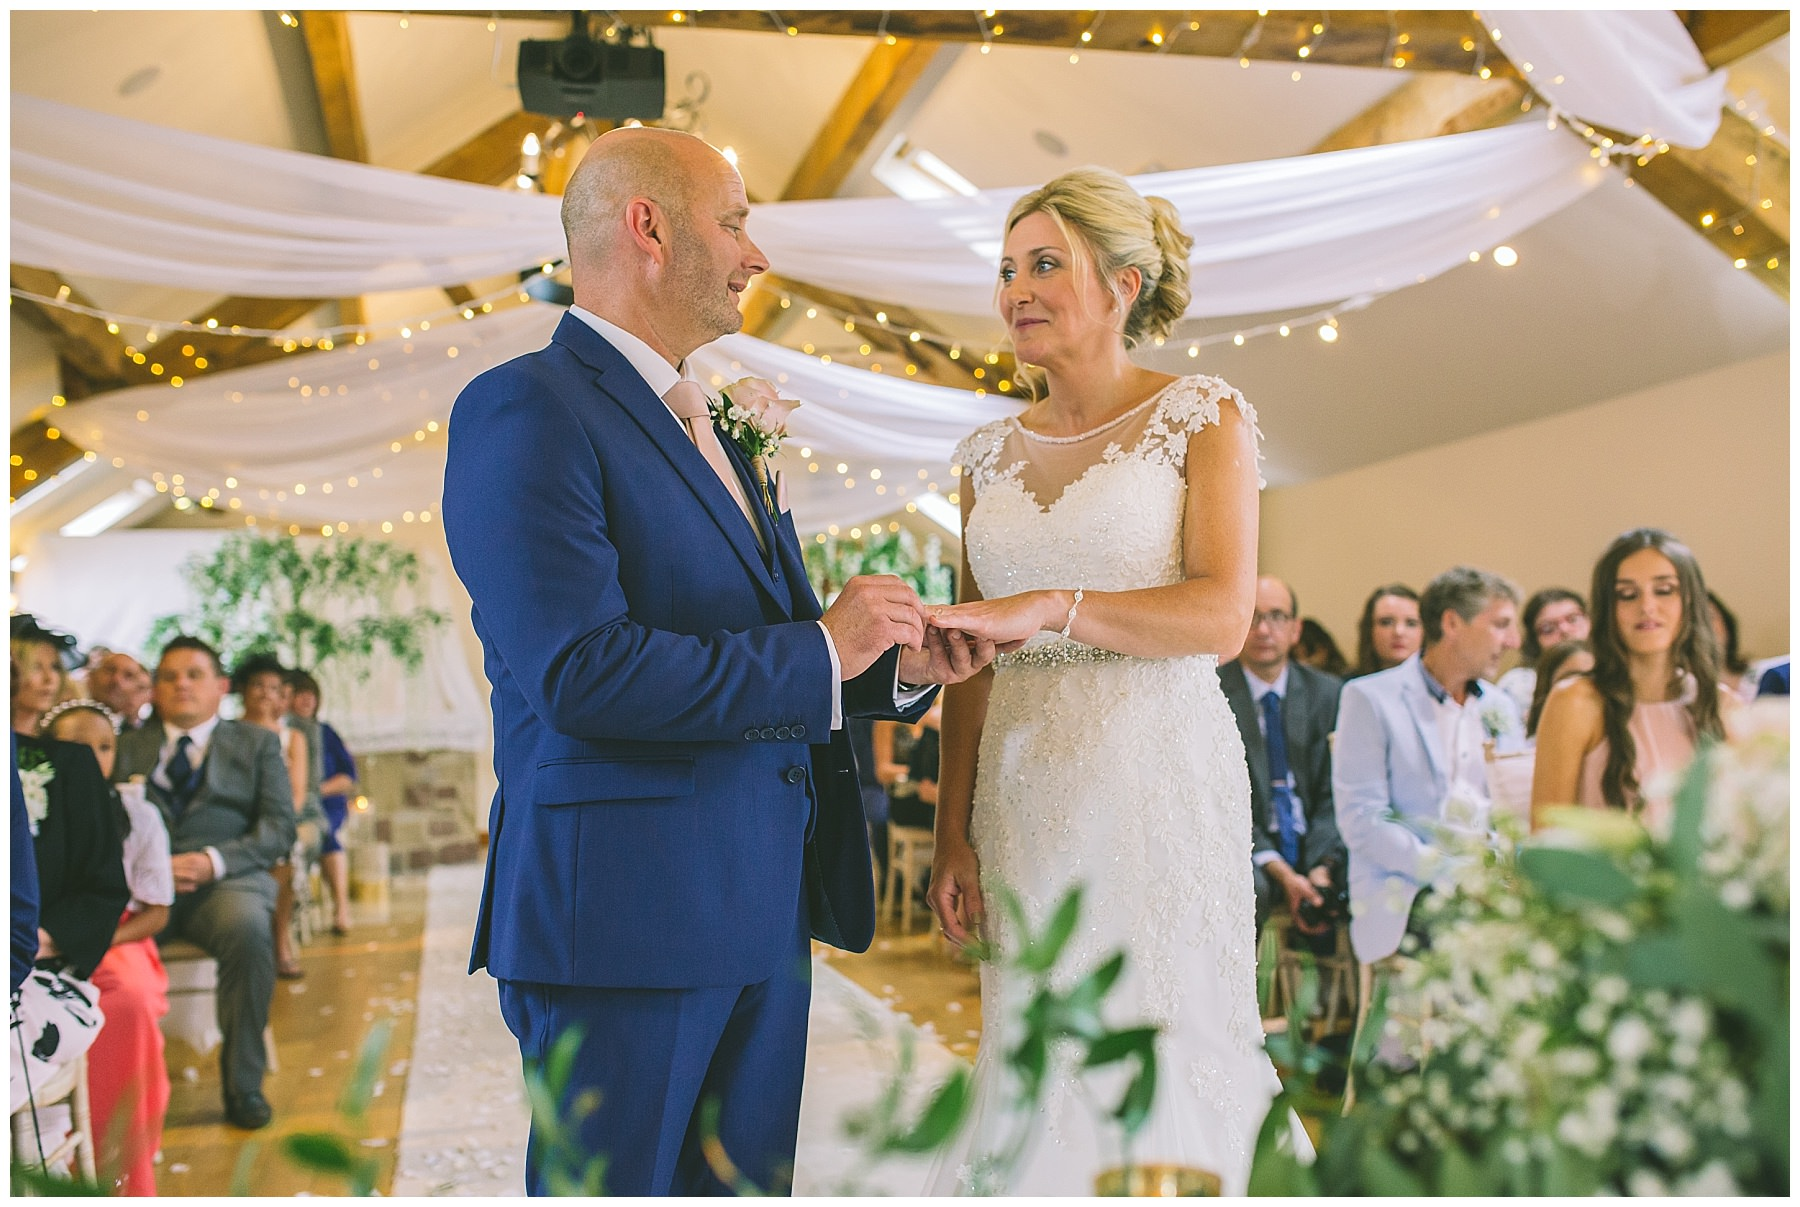 exchange of wedding rings at beeston manor